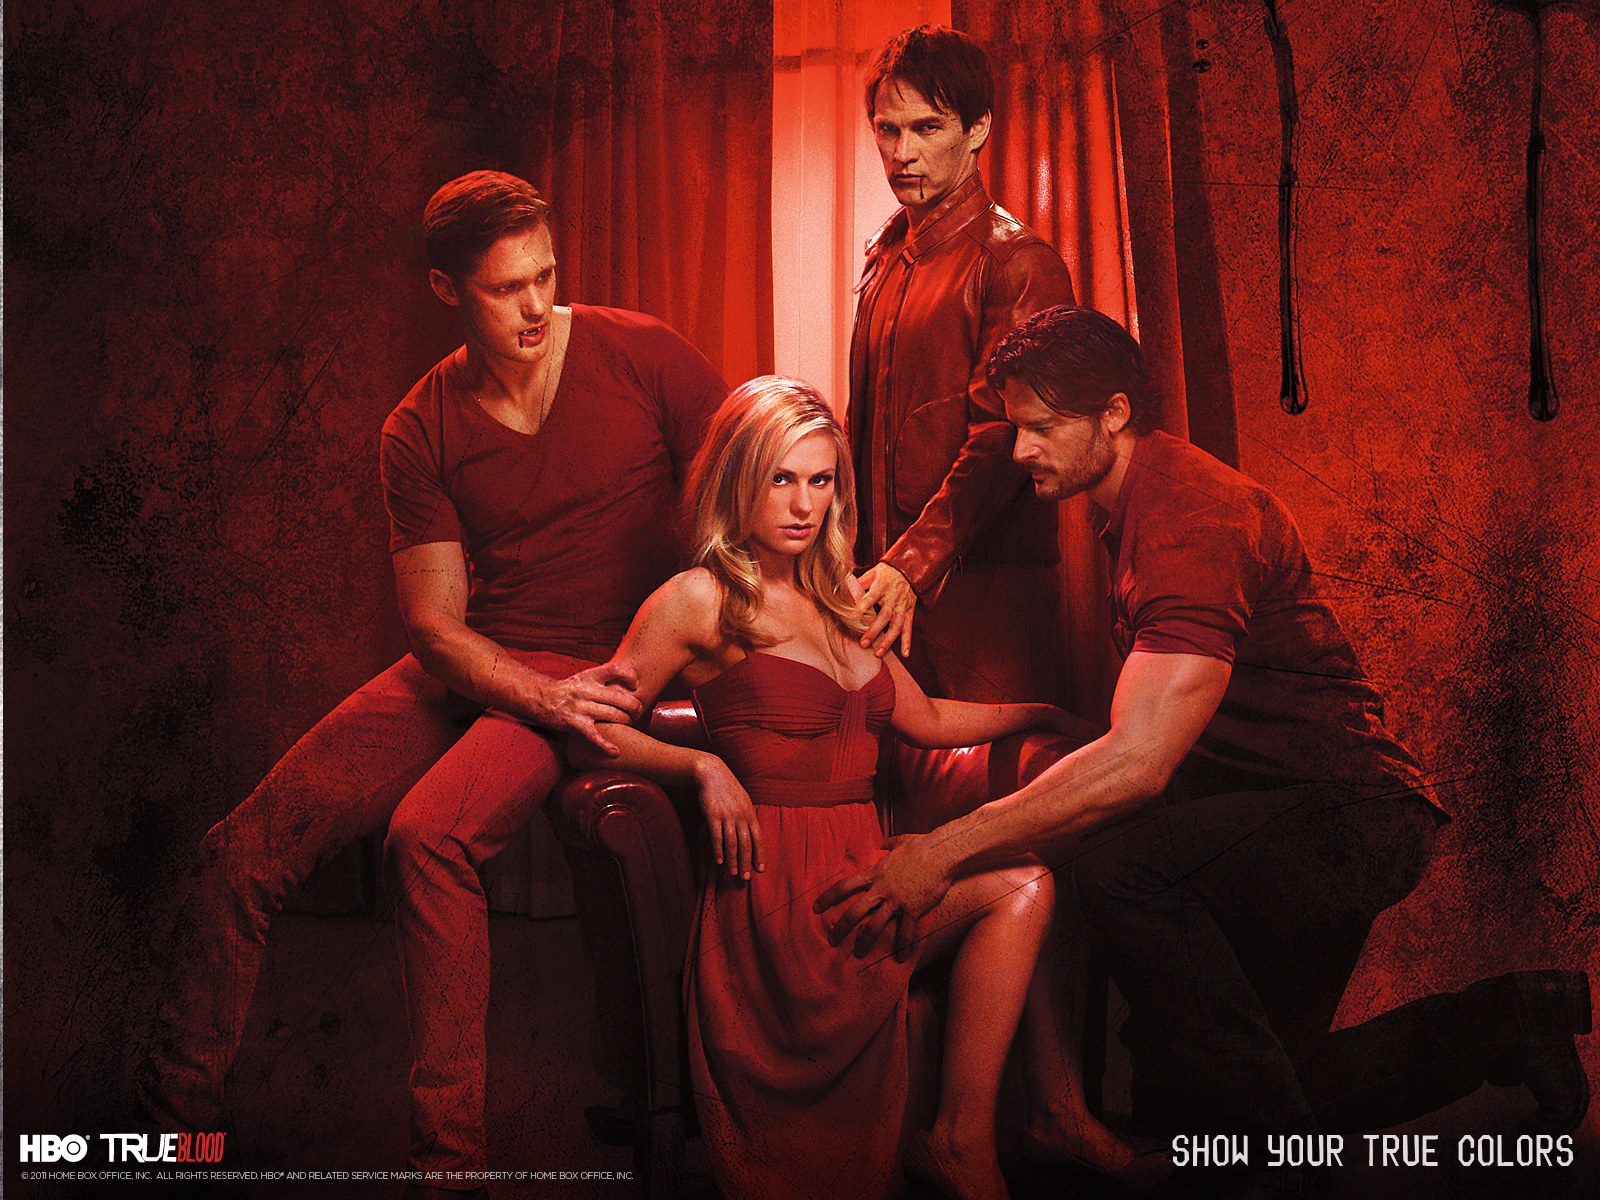 True-blood-hd-group-1920×1080-blood-adorable-wallpaper-wpt8209951.